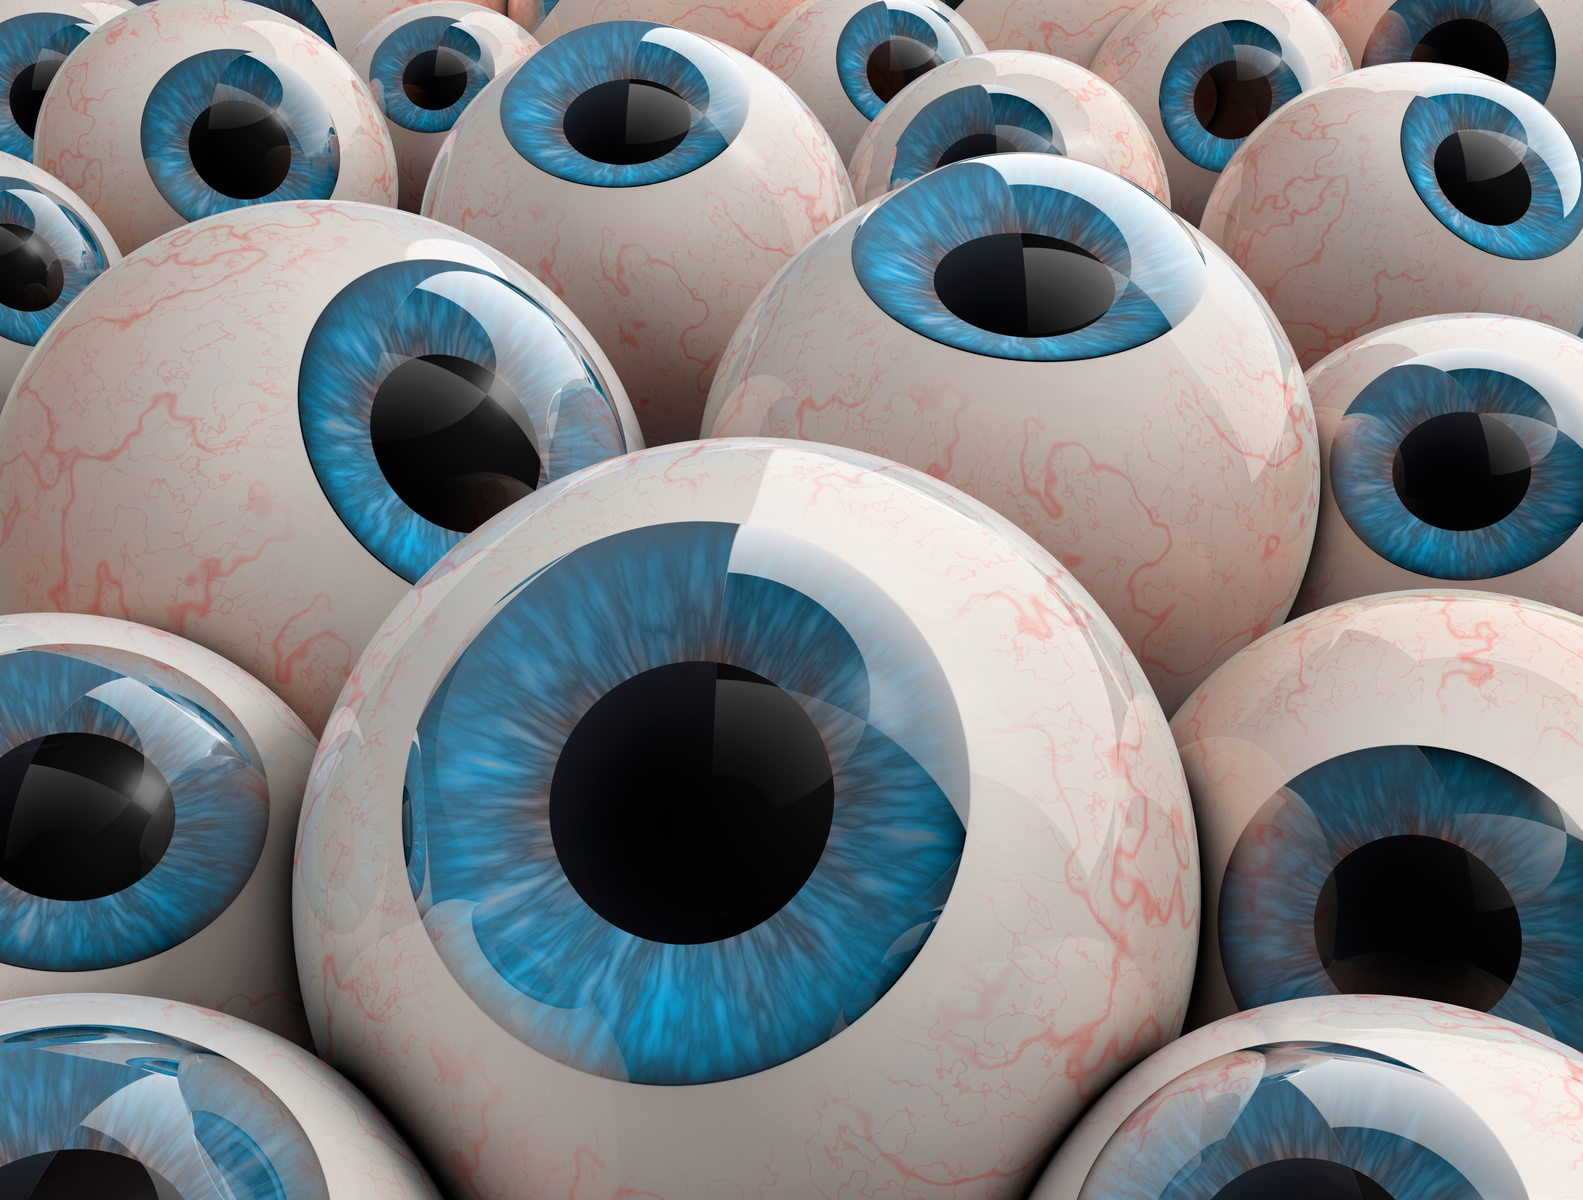 If you want to drive more eyeballs to your website, talk to the people who view it to find out what attracts them, what they look for and how they look for it.